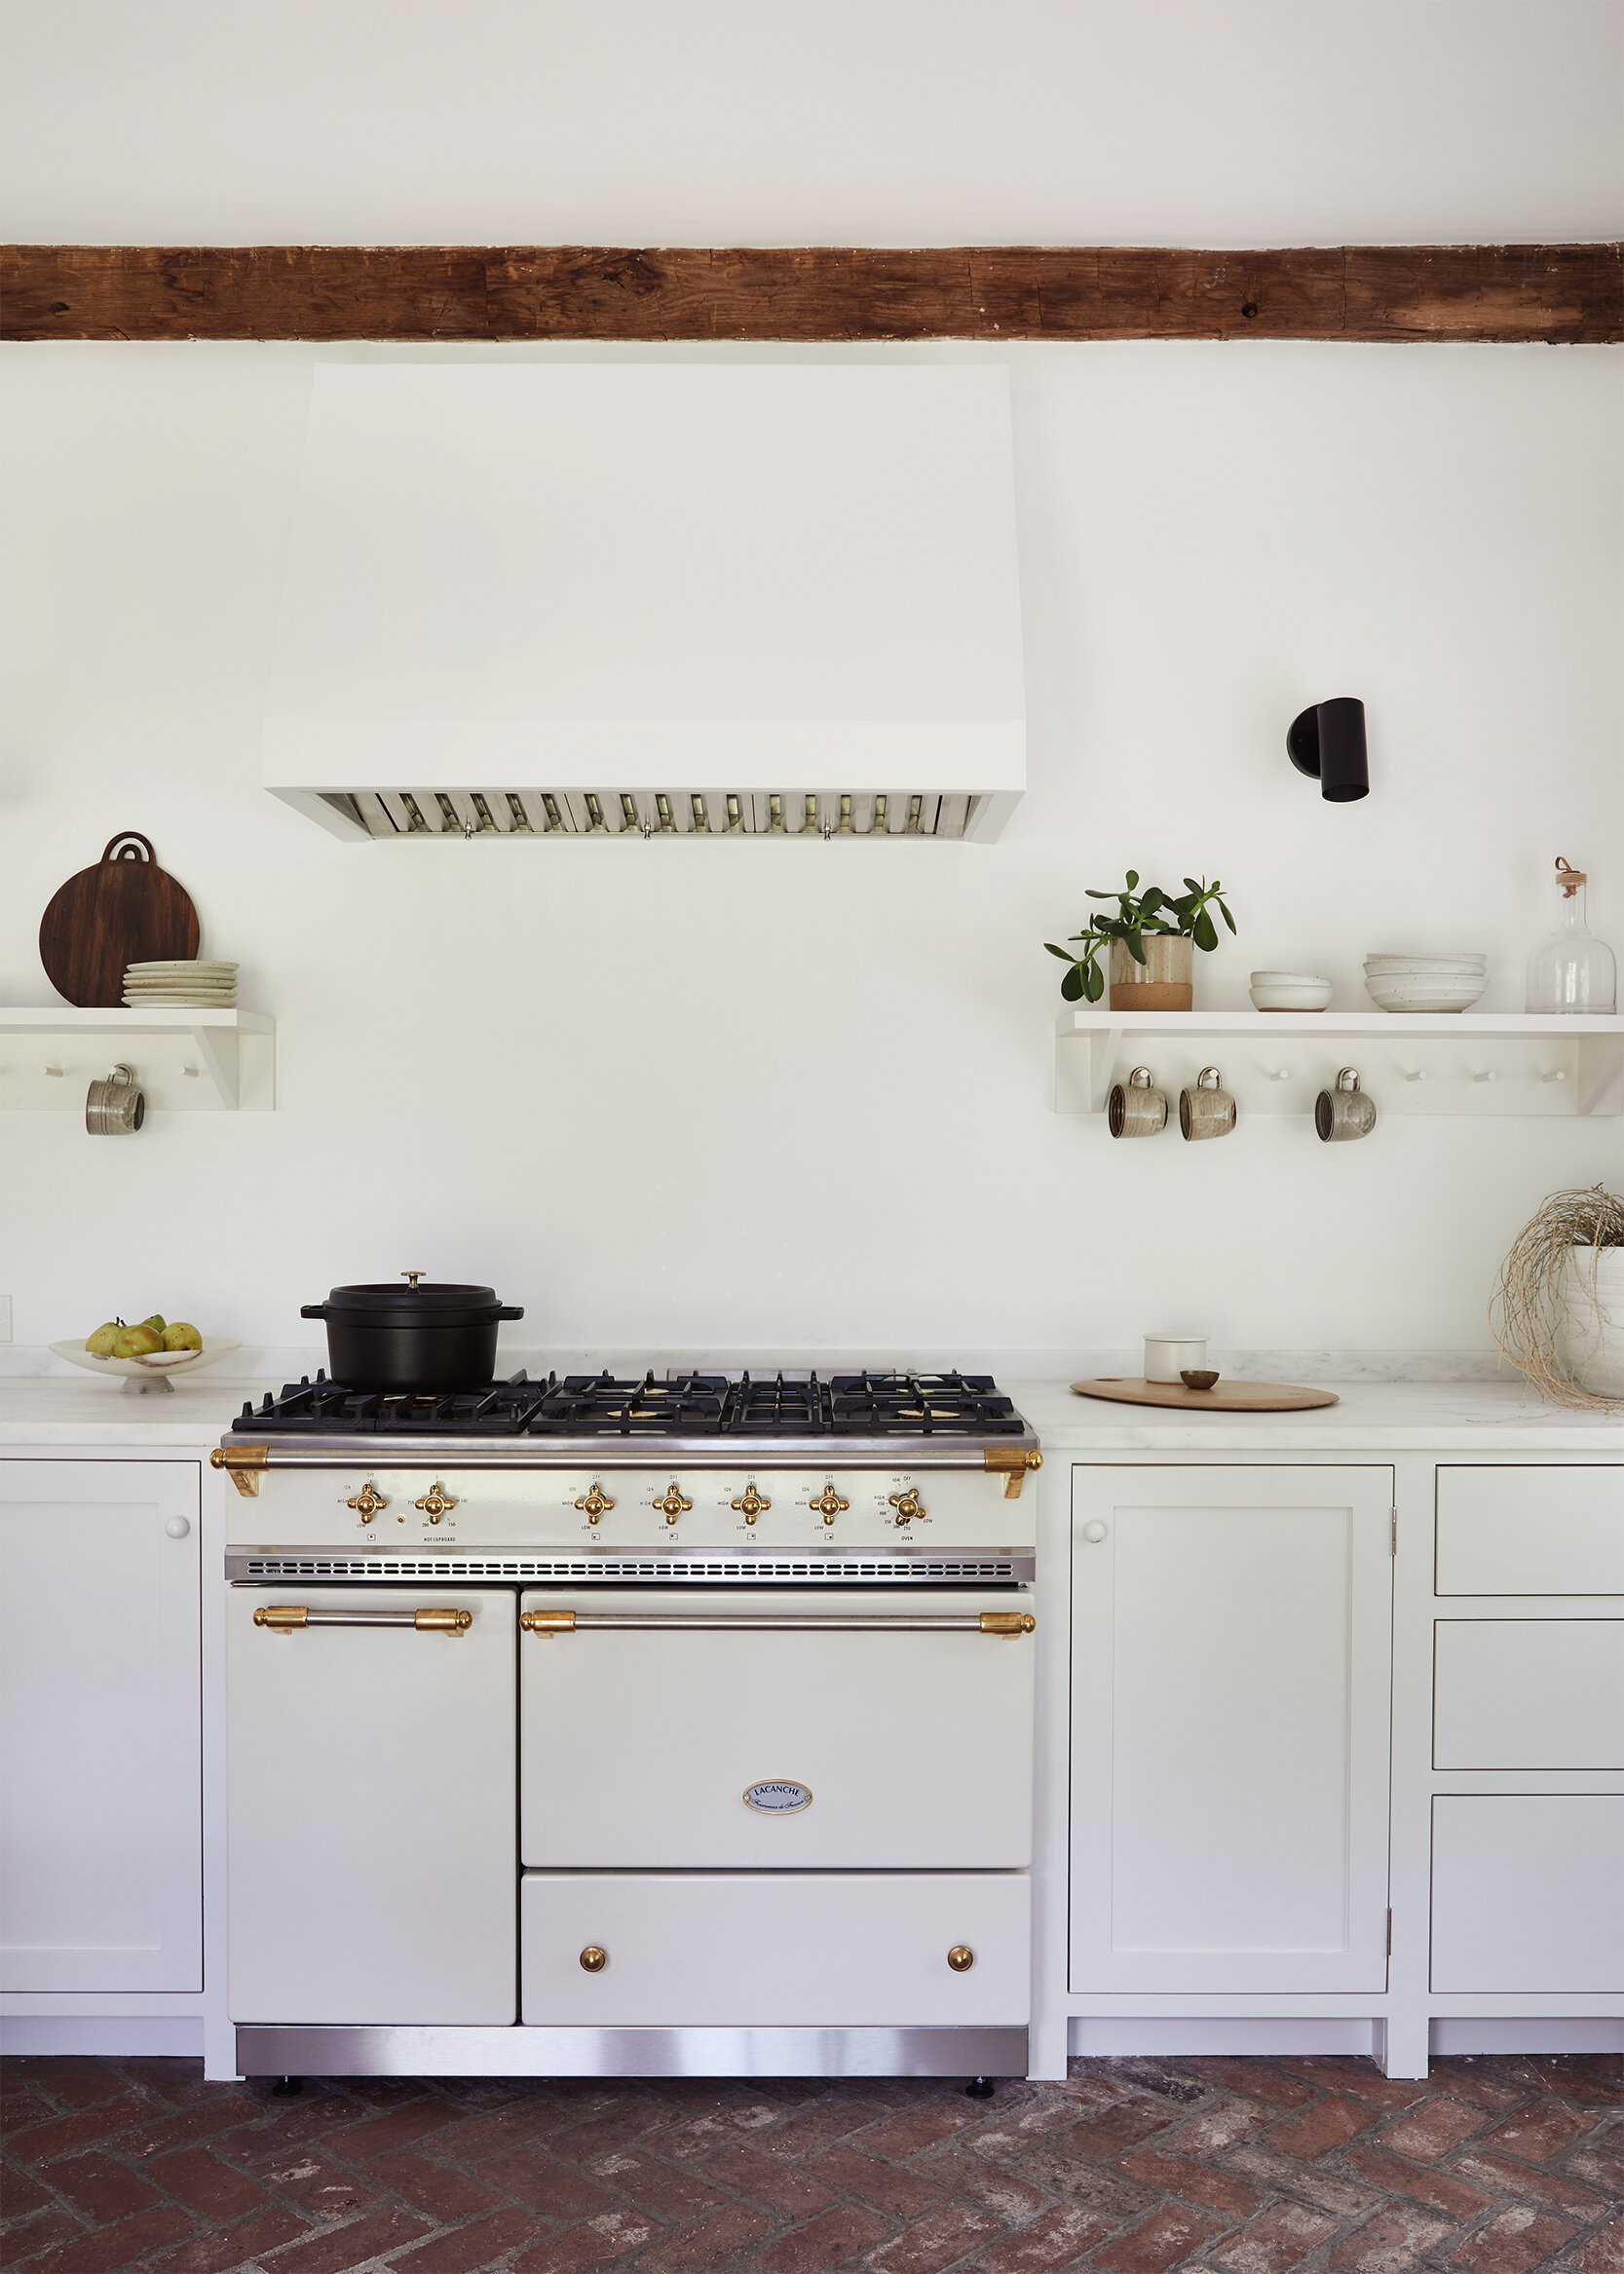 nune_Bruey Cottage_kitchen_03.jpg